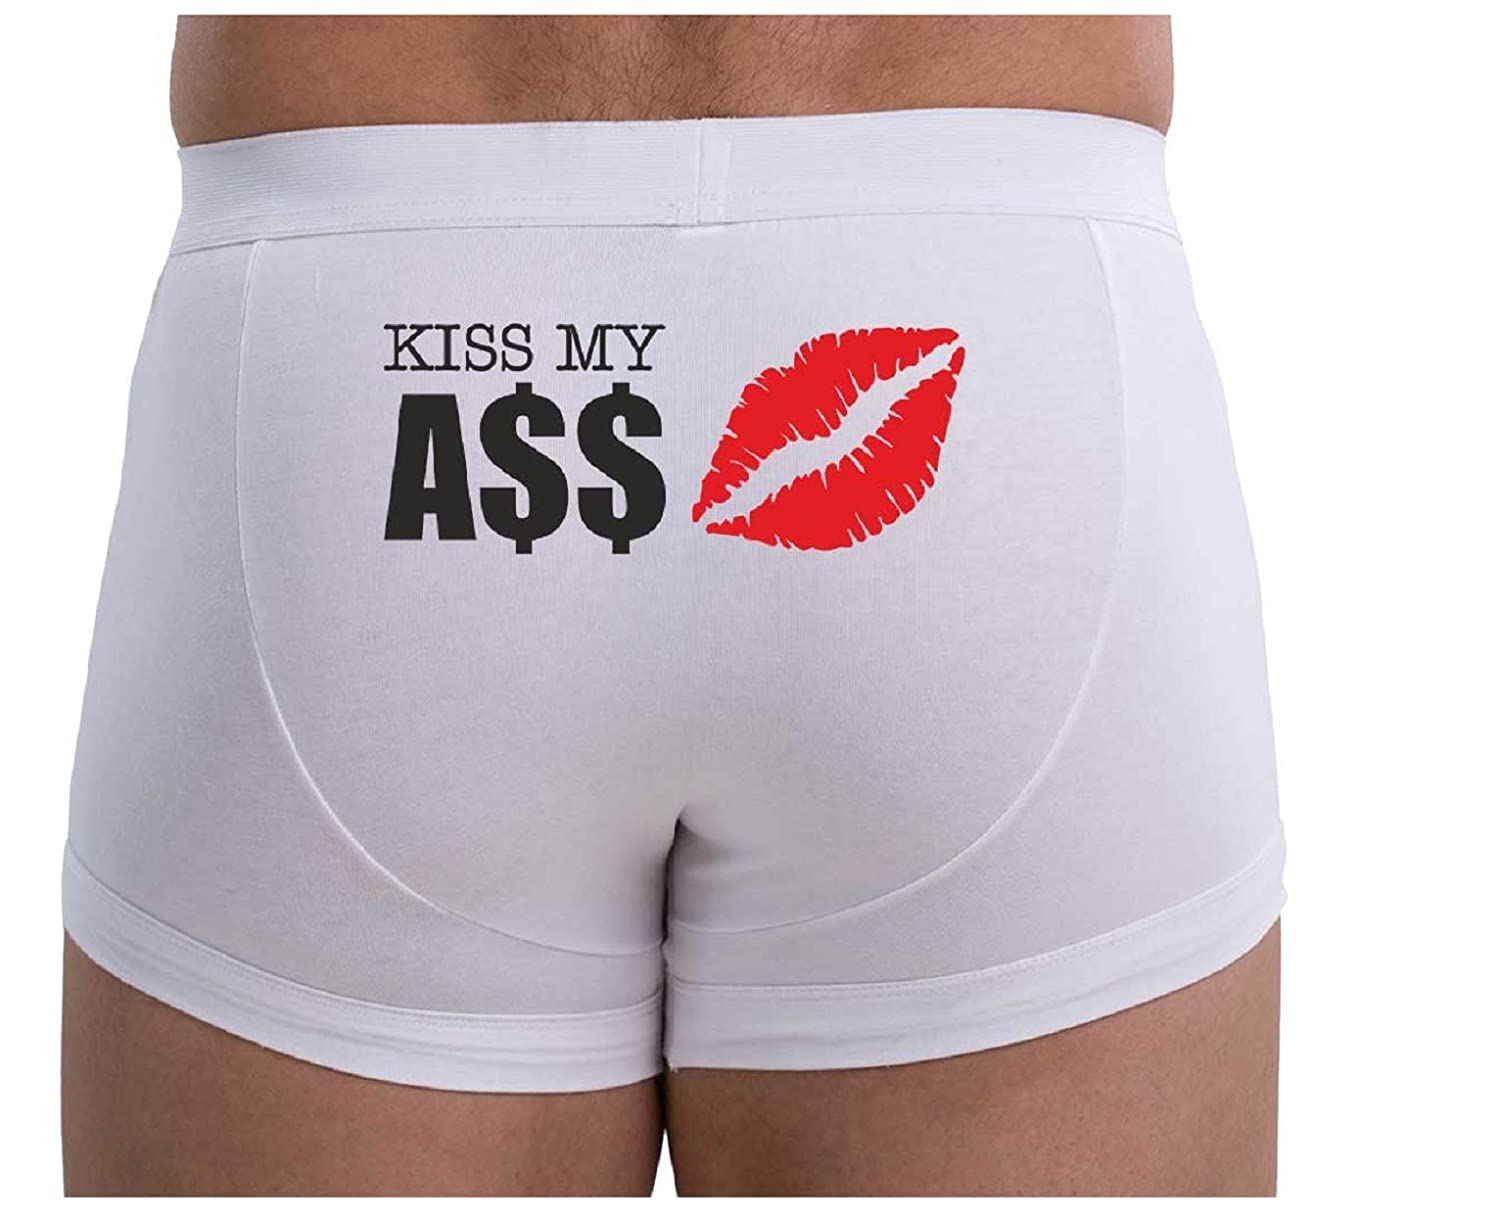 d61ad7b6e760 MySexyShorts Men's Boxer Brief White Cotton Underwear with Sexy Funny  Artwork at Amazon Men's Clothing store: